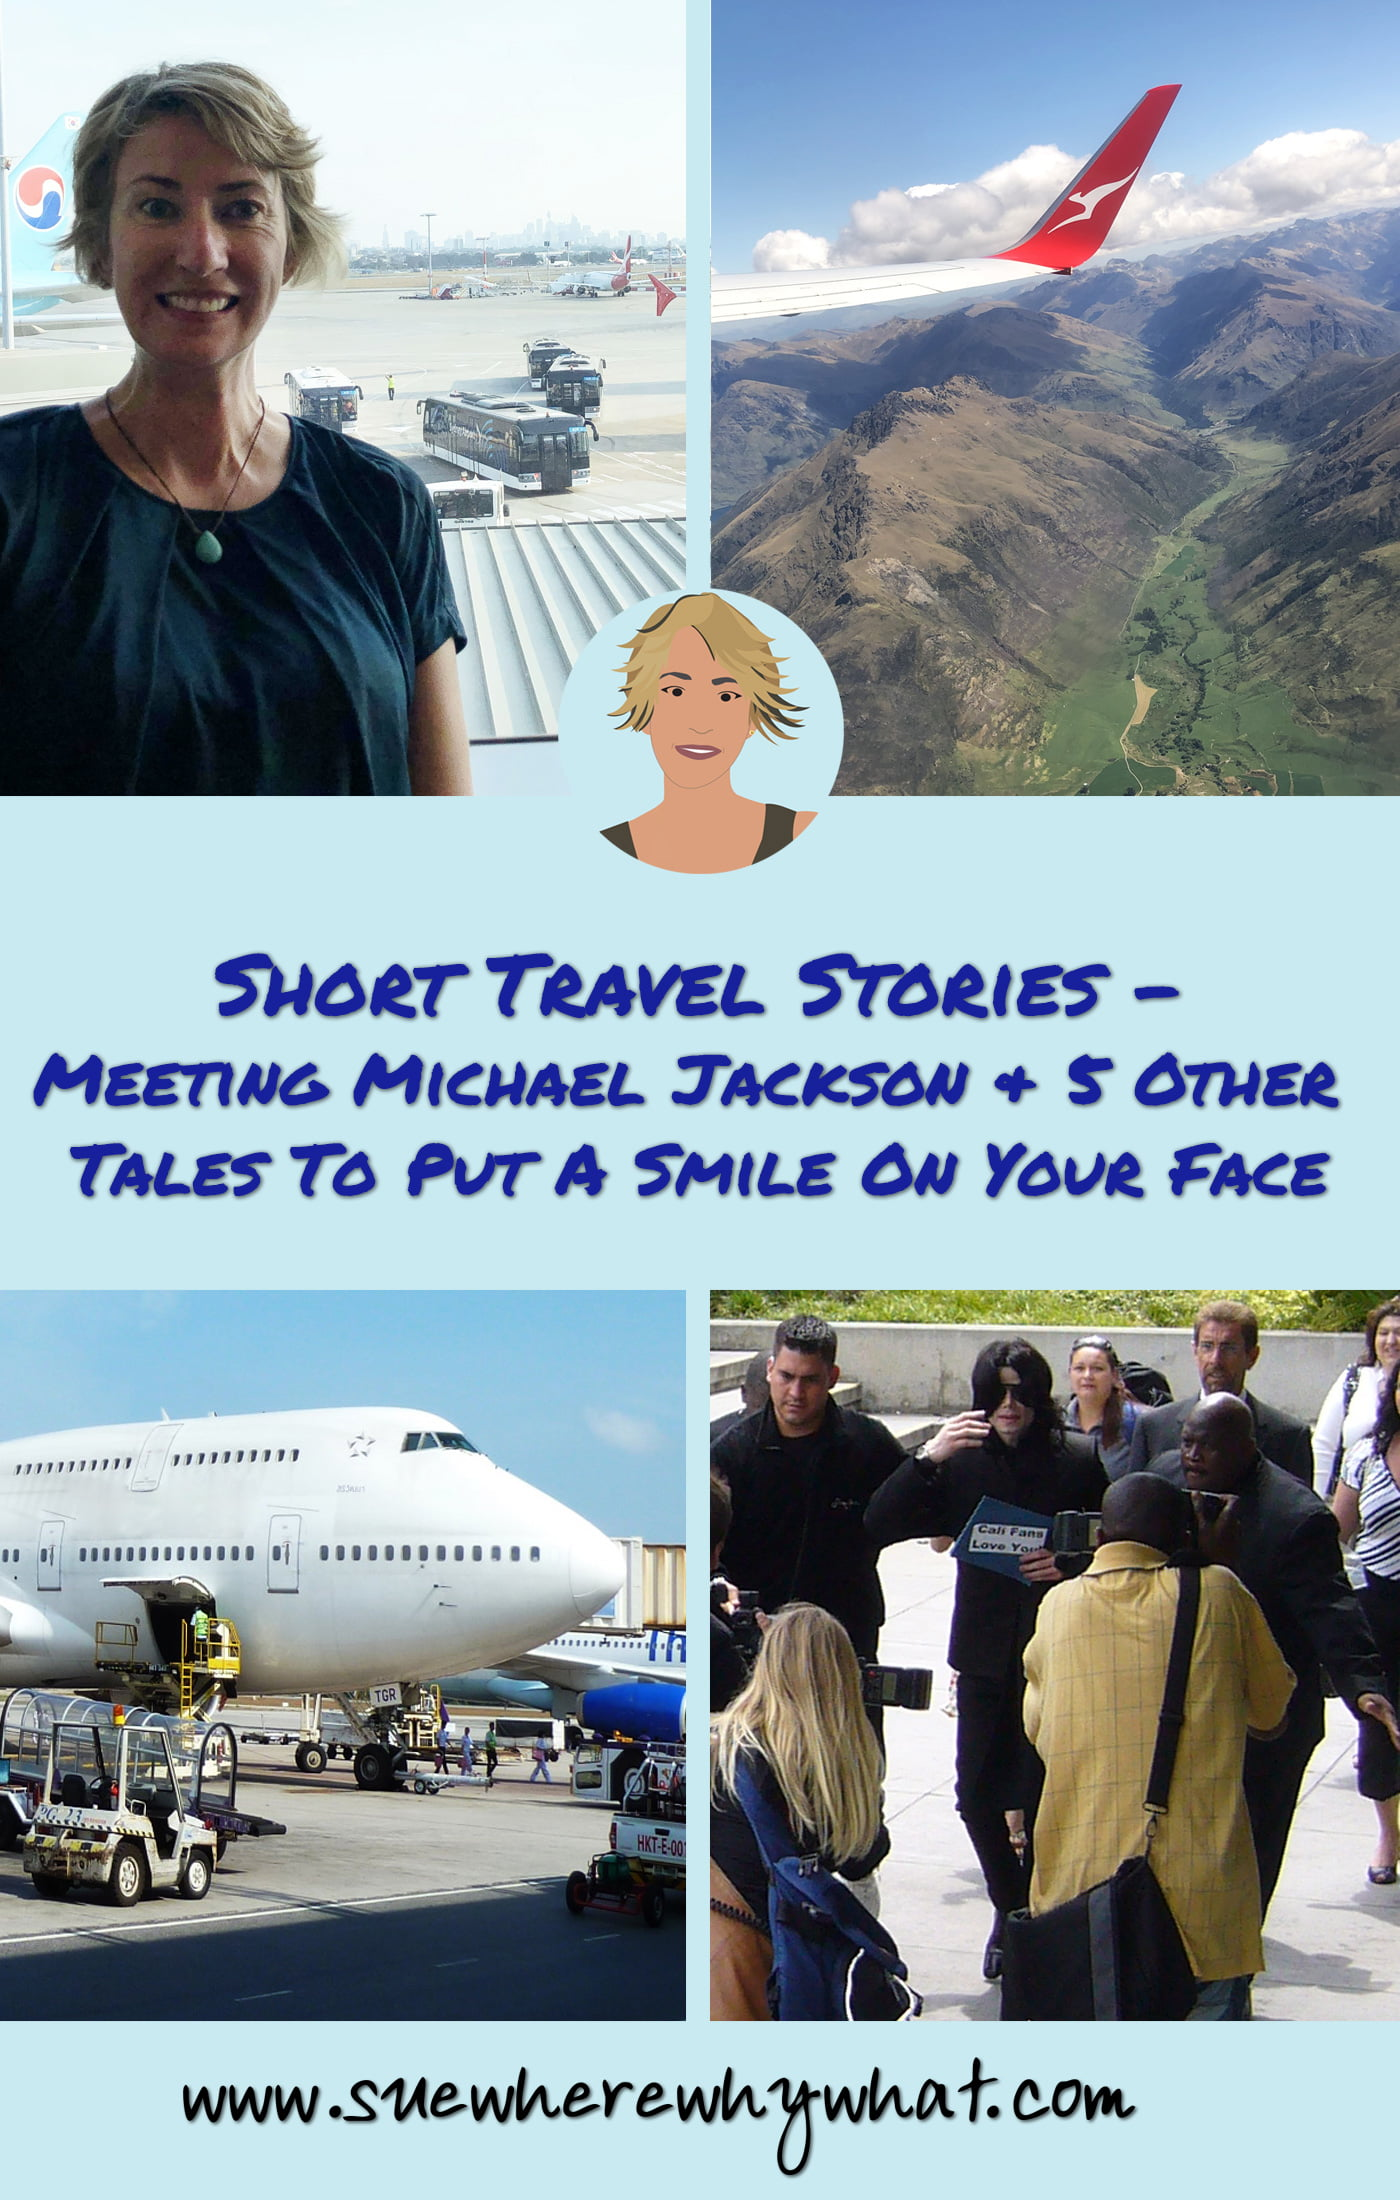 Short Travel Stories – Meeting Michael Jackson & 5 Other Tales To Put A Smile On Your Face